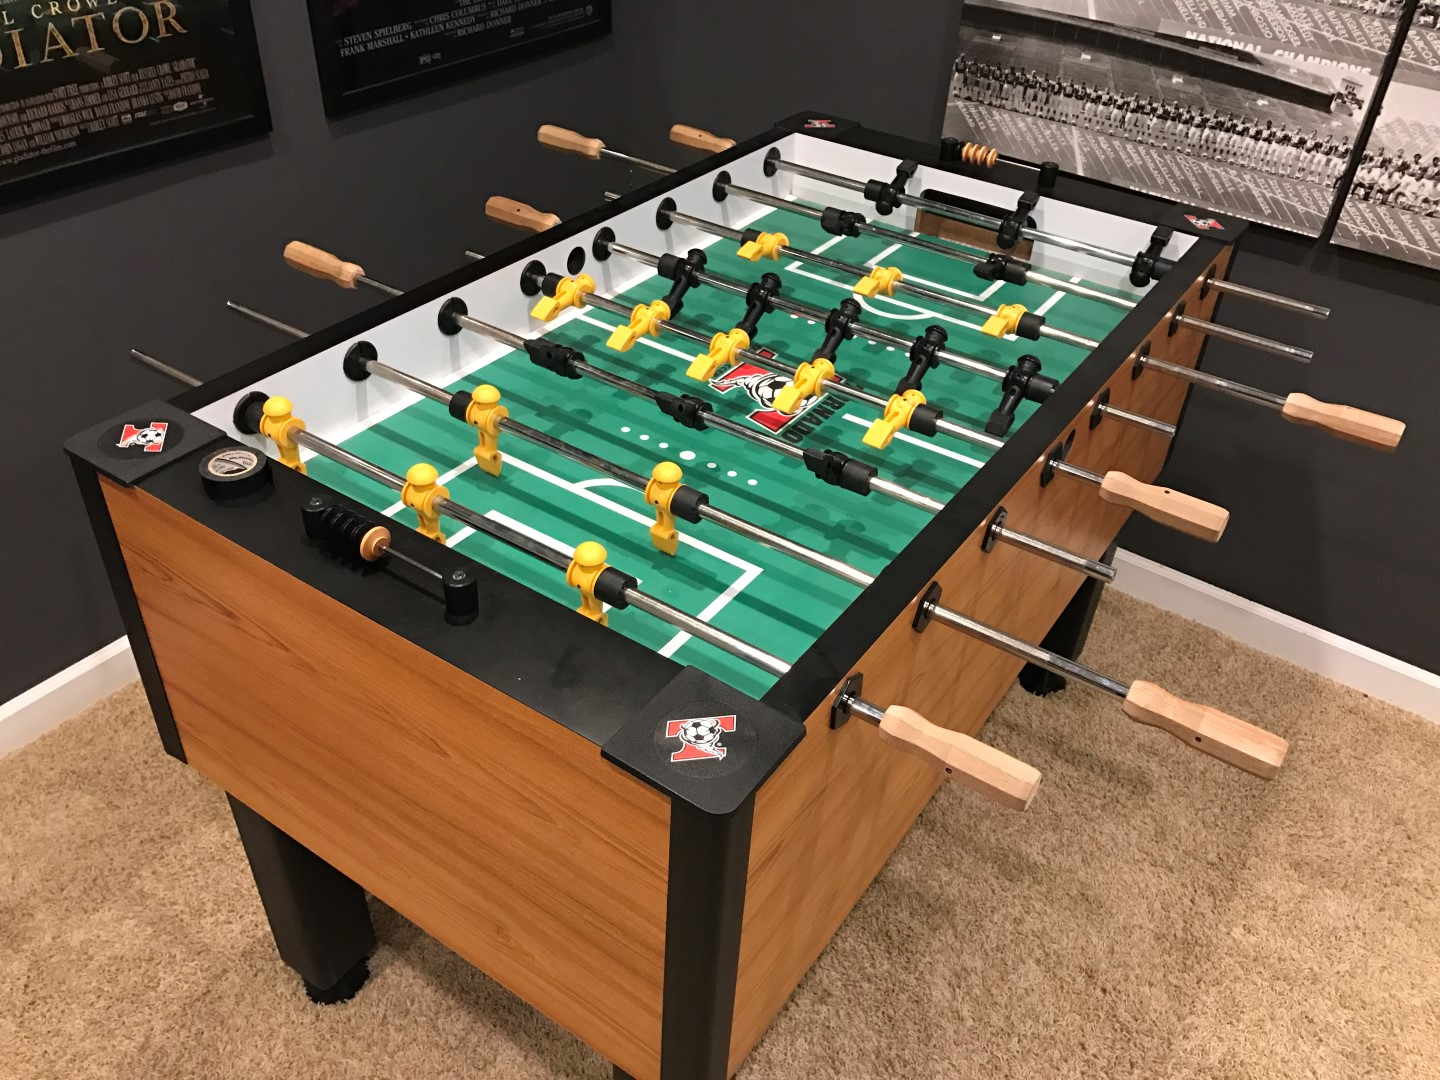 Foosball Table Electronic Sound System Game Room Info - How much does a foosball table cost